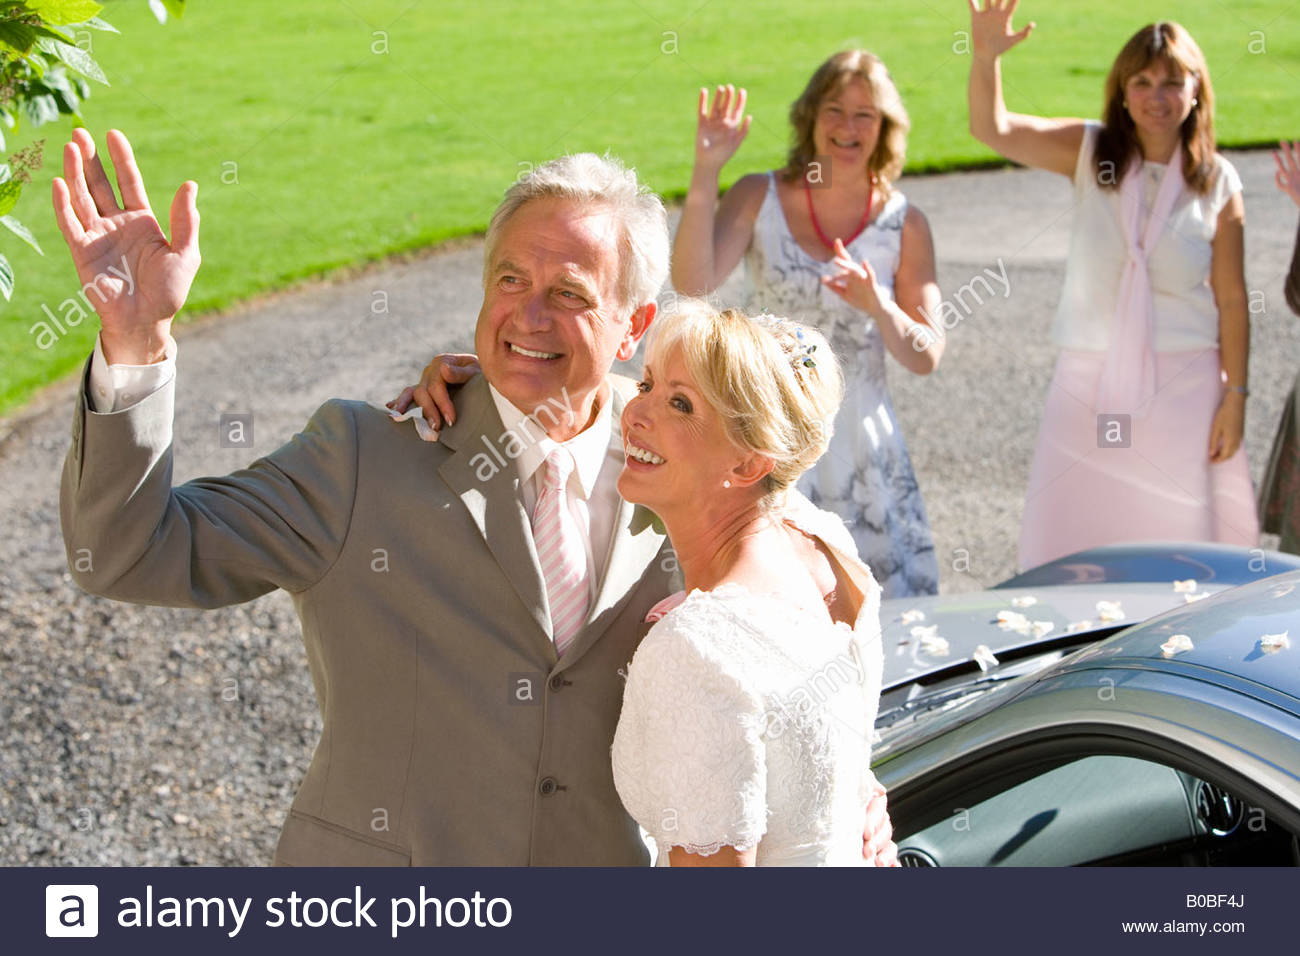 Bride, groom, and guests waving, smiling, elevated view - Stock Image